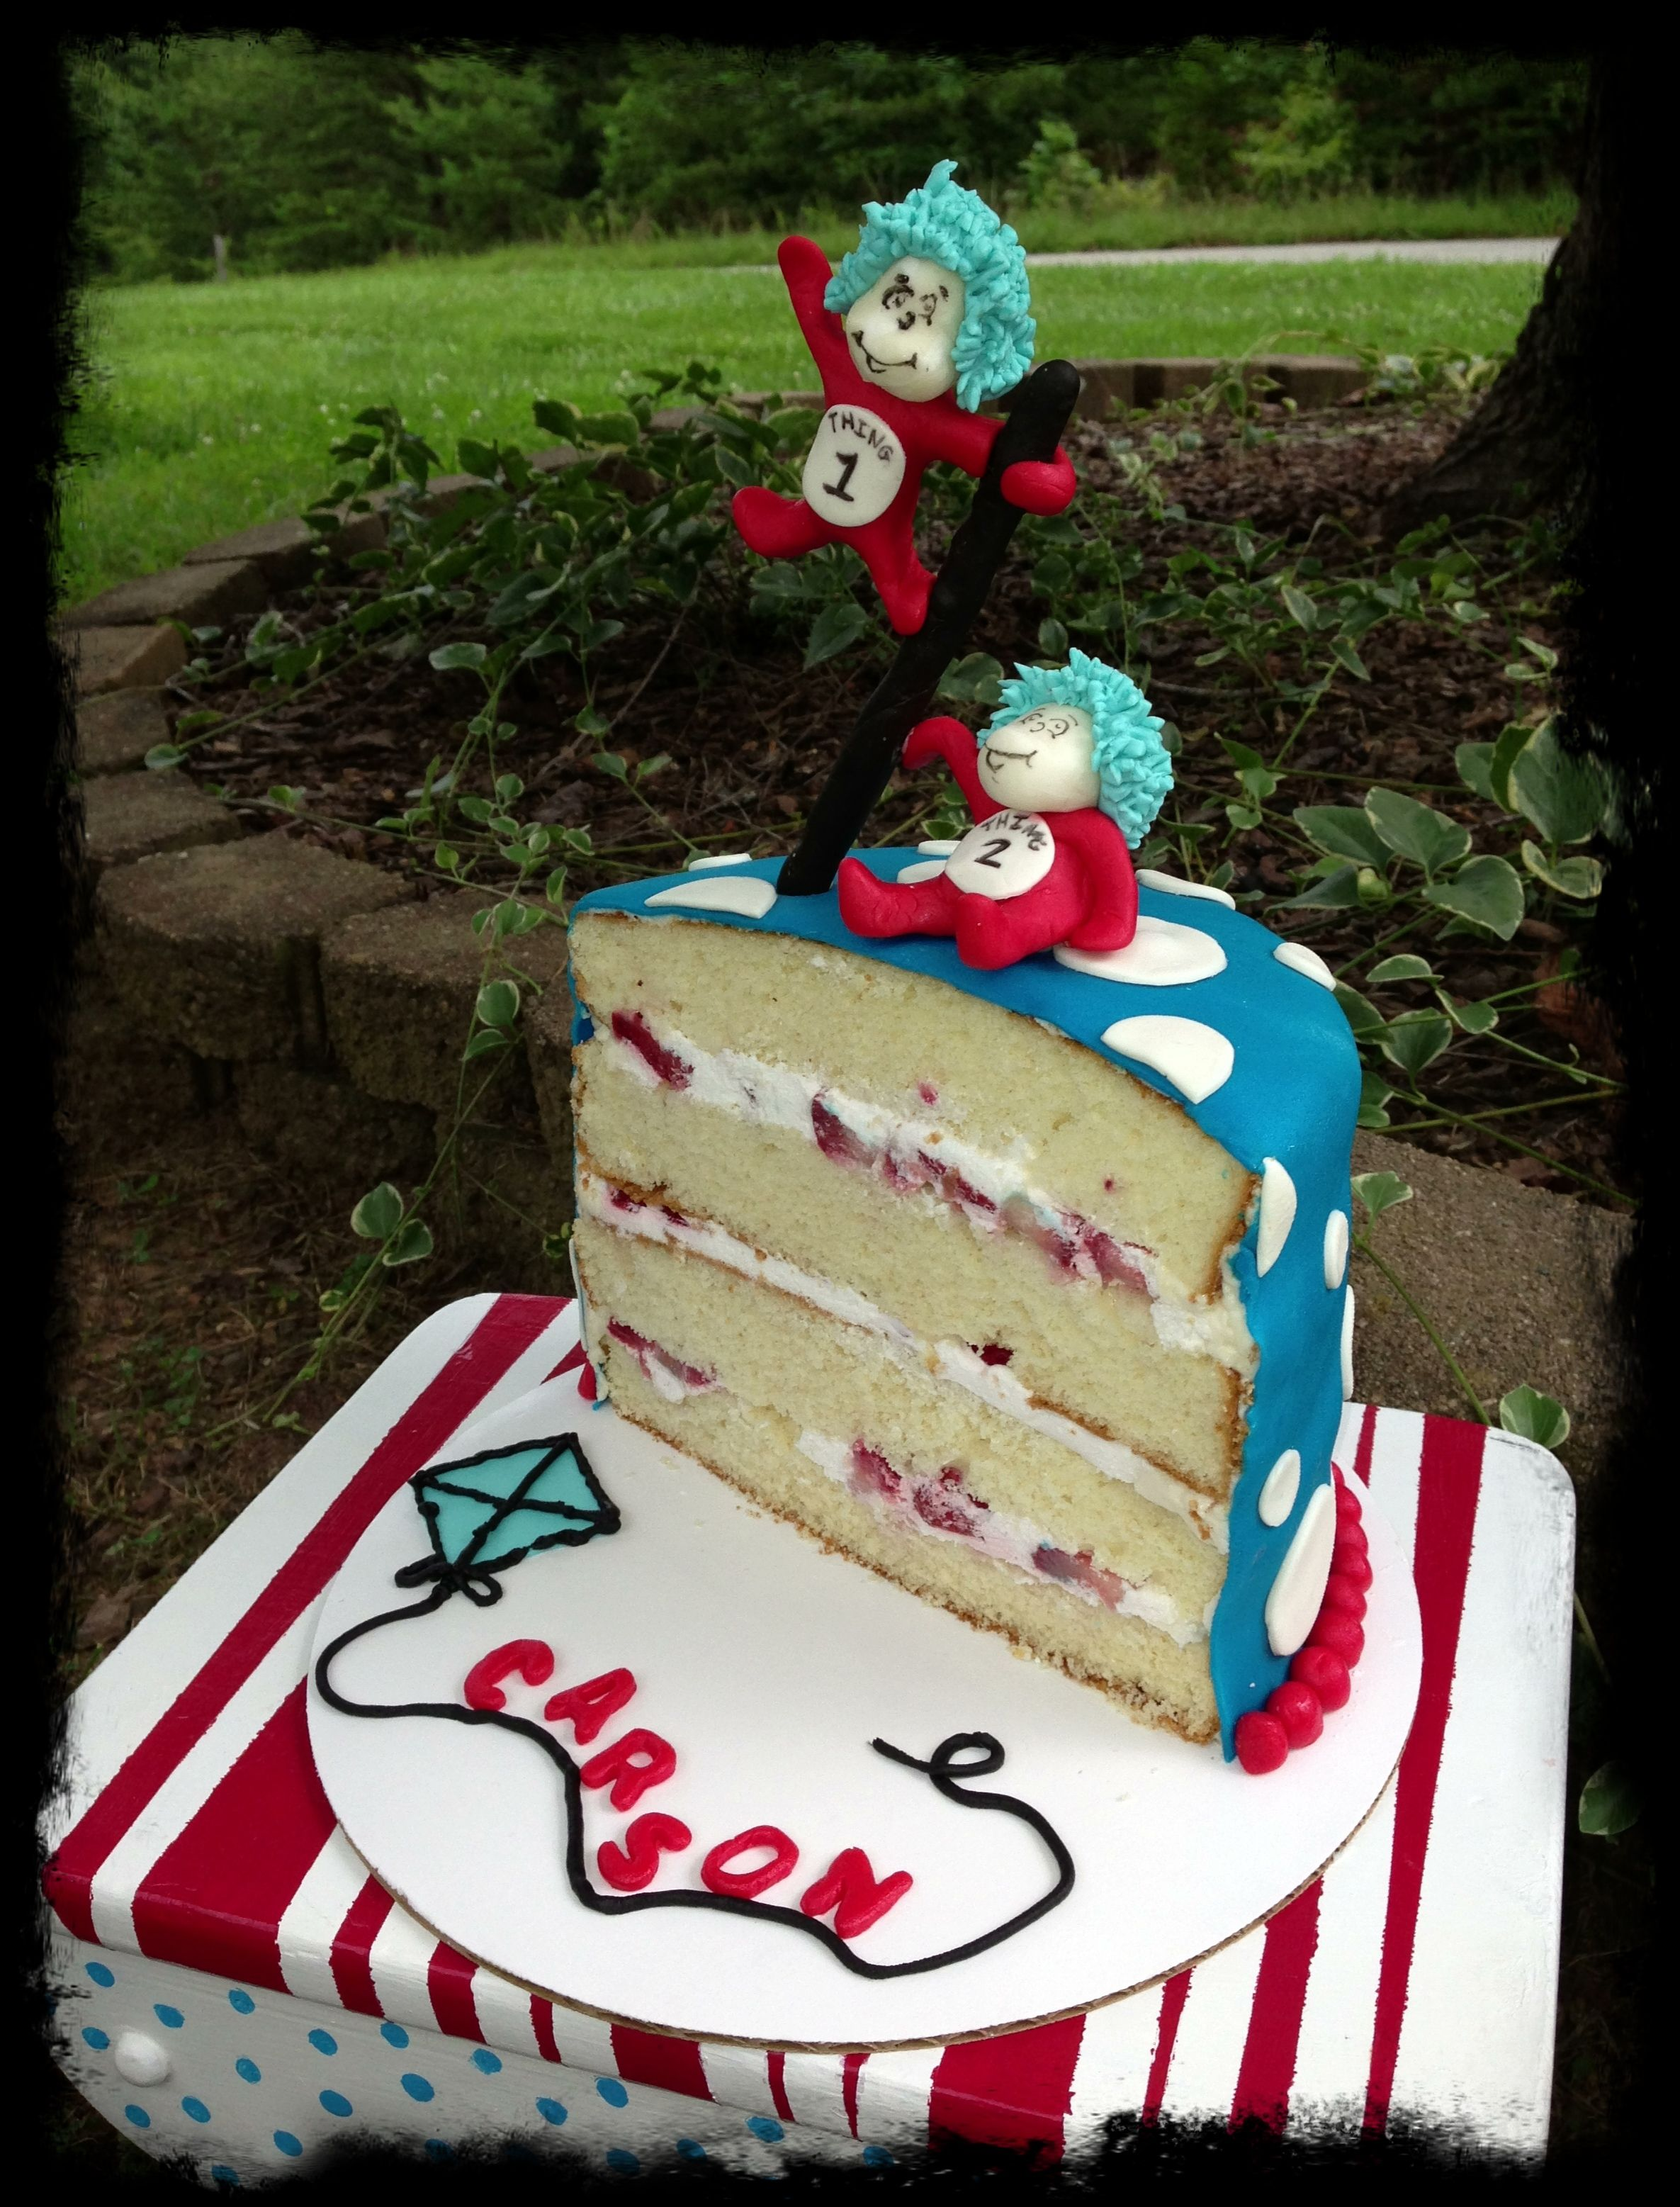 My Baby Boy S 1 2 Birthday Cake Dr Seuss Half Birthday Cake With